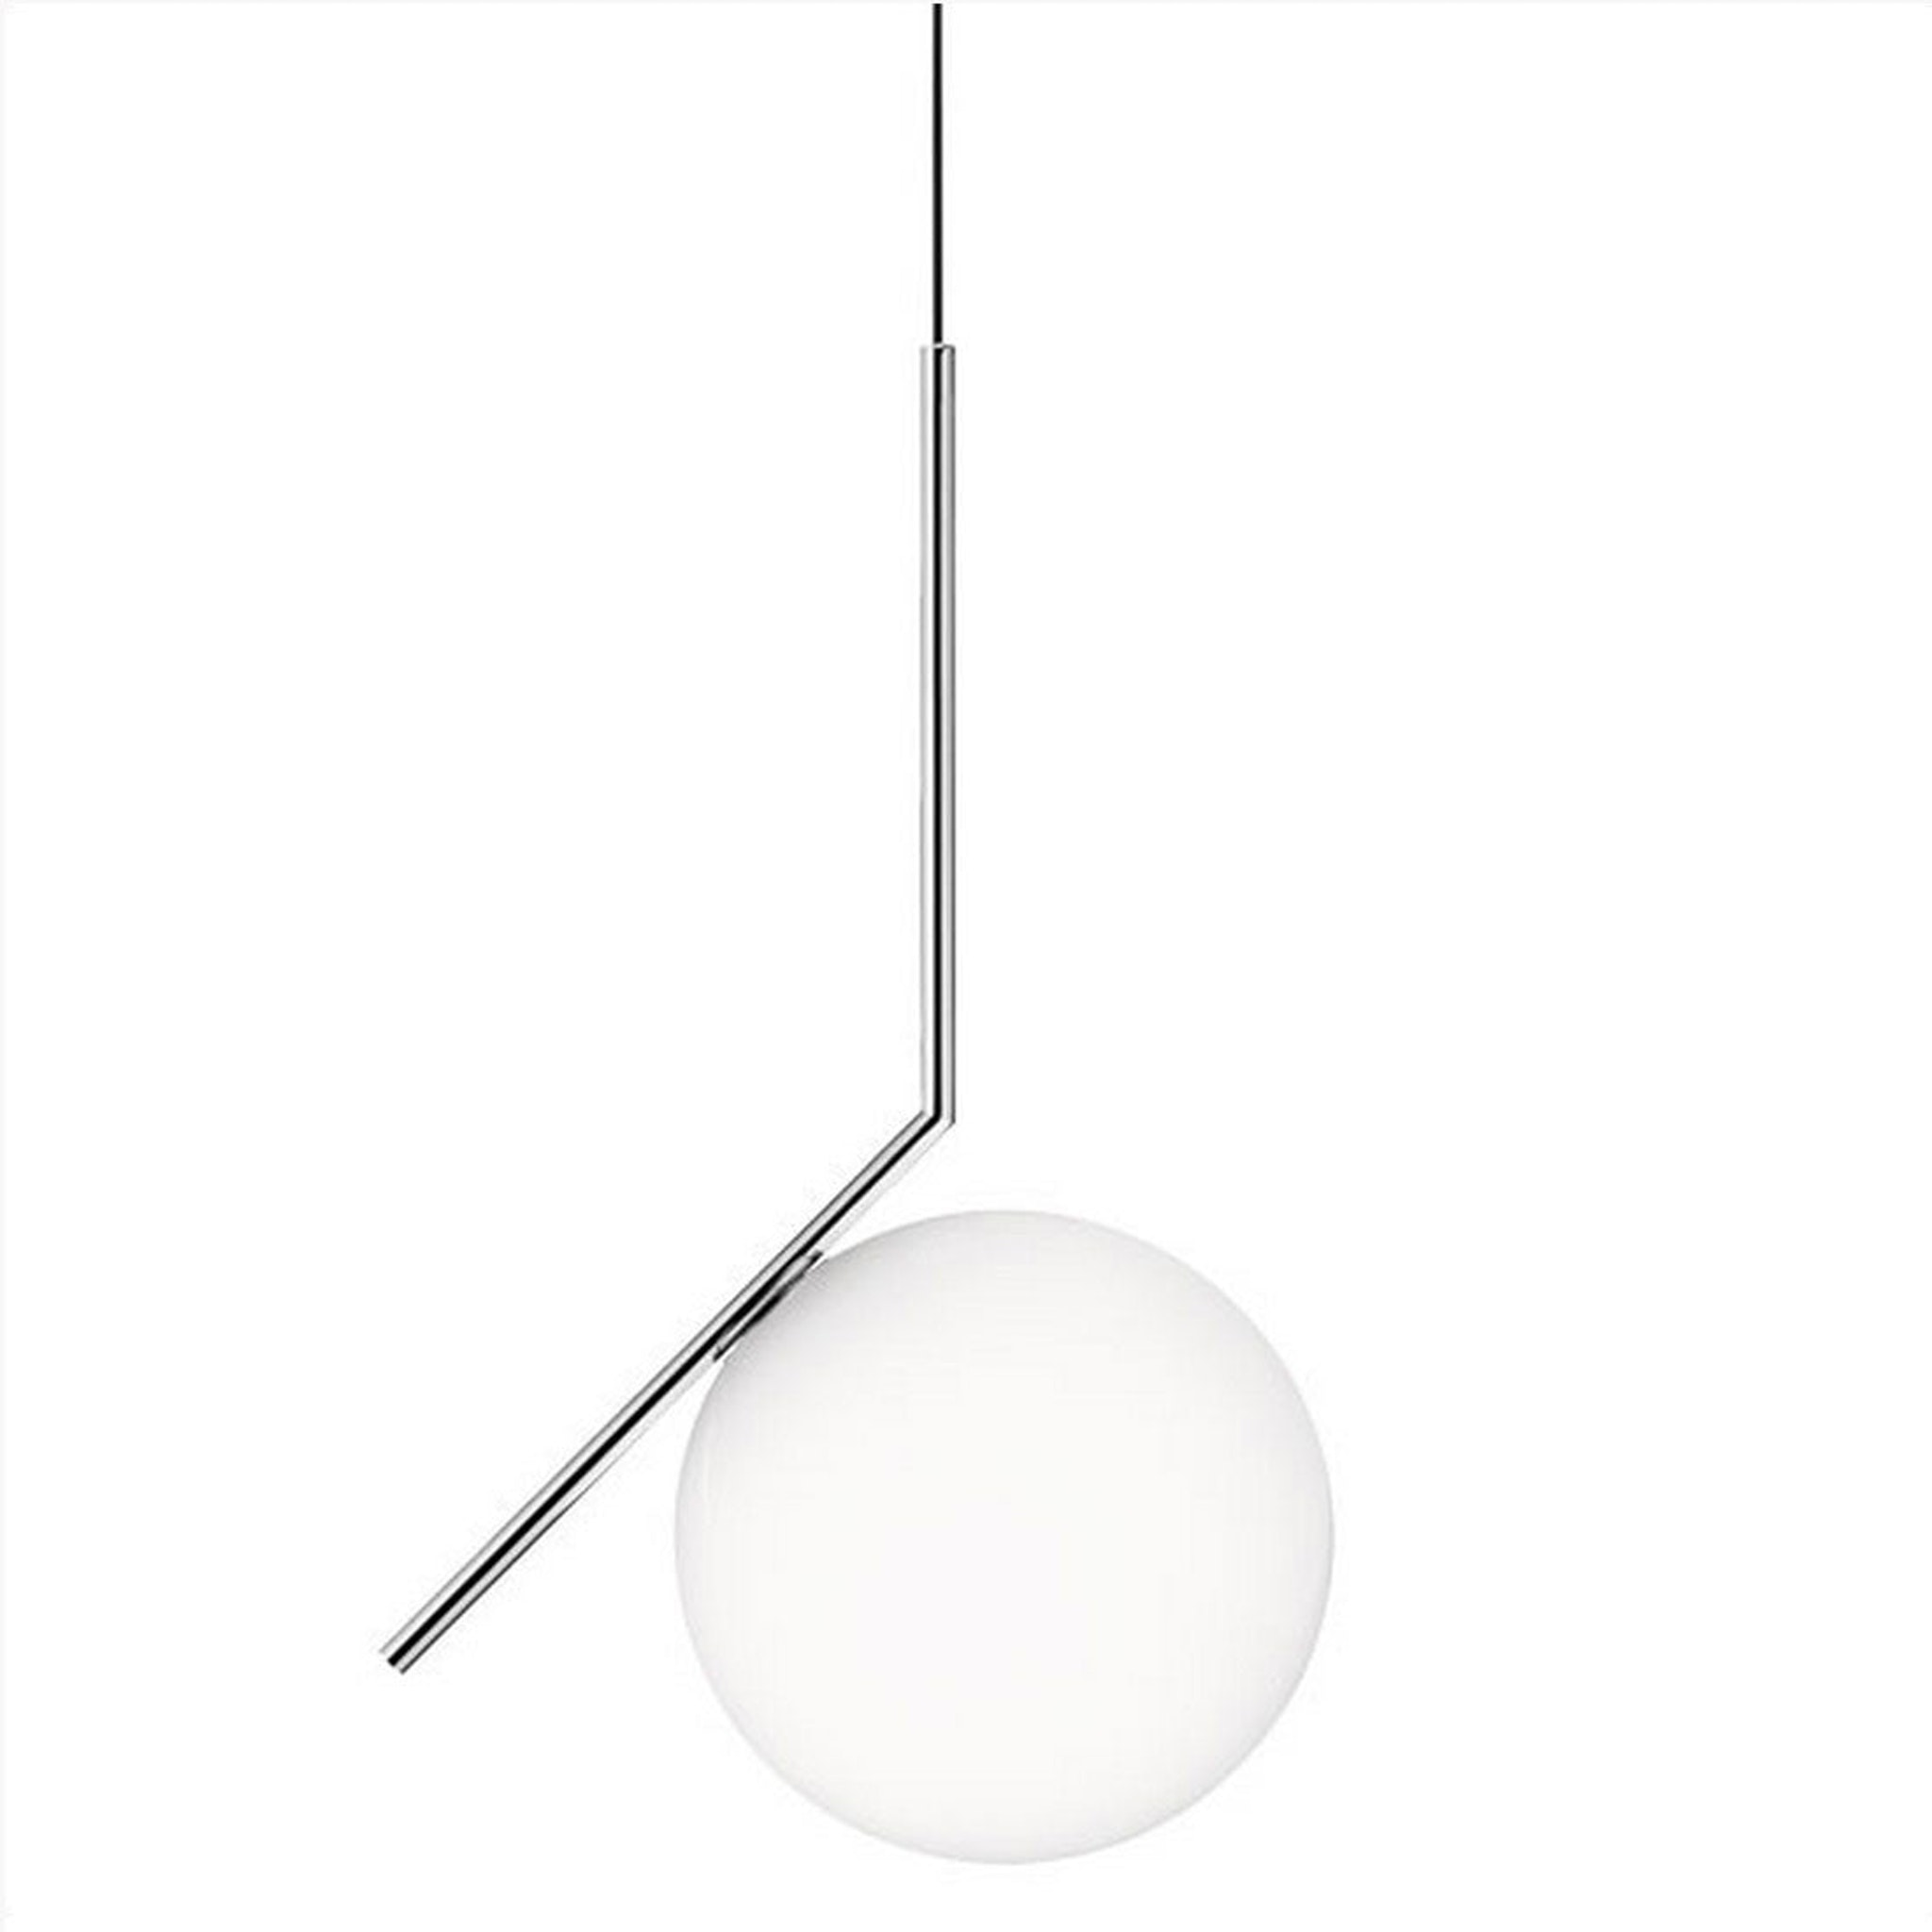 IC S2 light by Flos